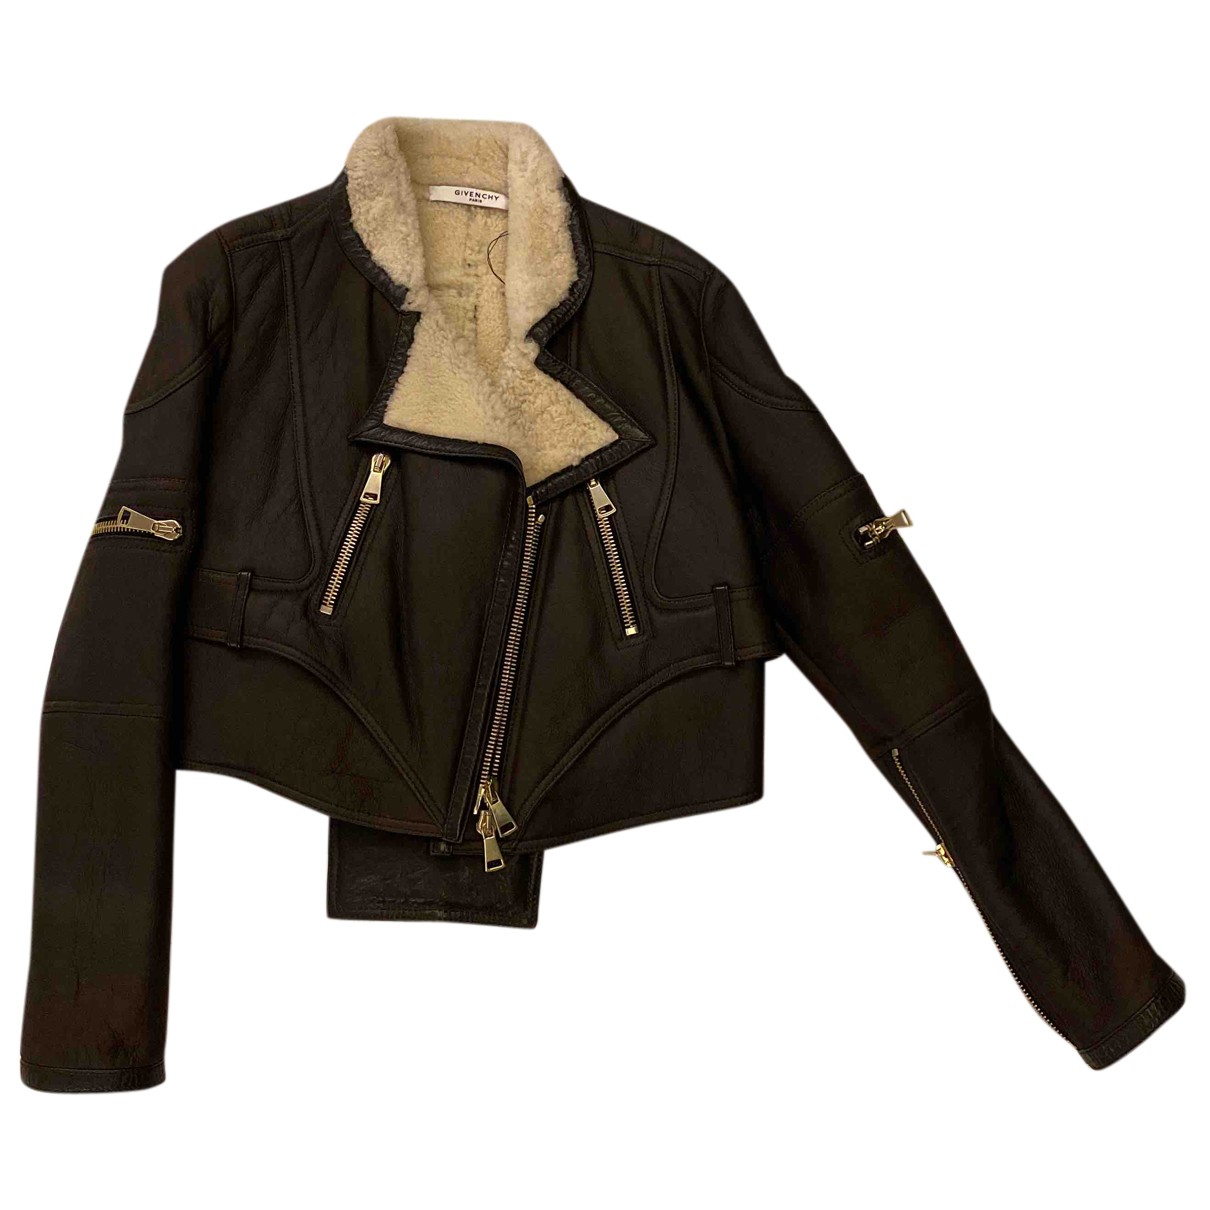 Givenchy N Brown Leather Leather jacket for Women 36 FR